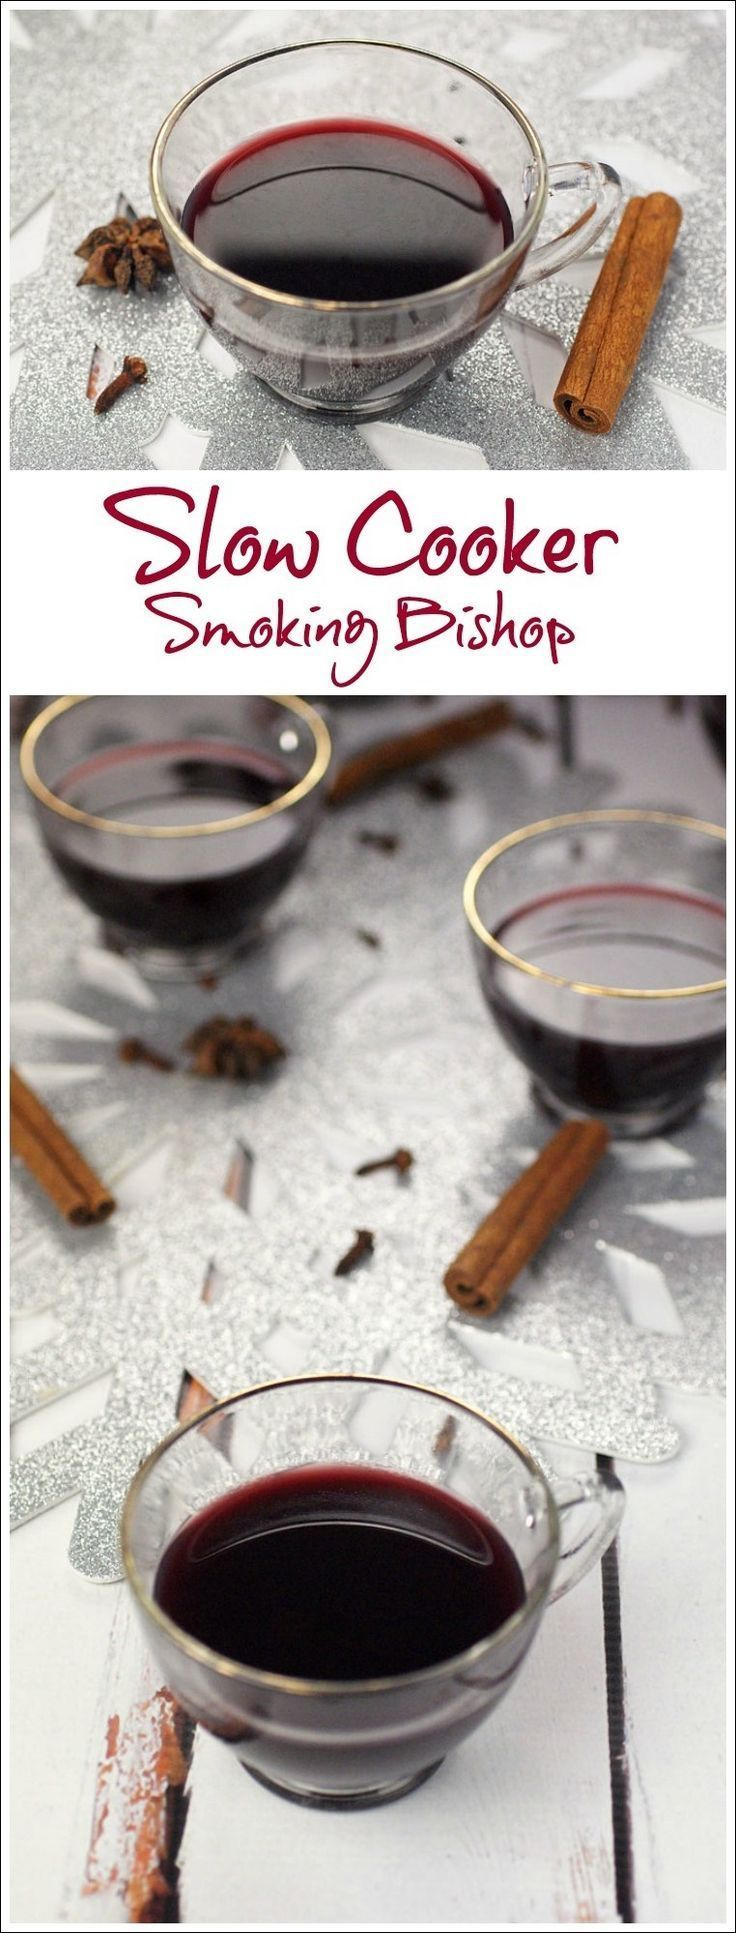 Need a mulled spiced wine recipe for a Christmas or New Year's Eve party. Smoking Bishop is a warmed, spiced fruit wine and port drink. Usually it takes two days to make, but this recipe cuts the time to half a day by using a slow cooker! Find this party